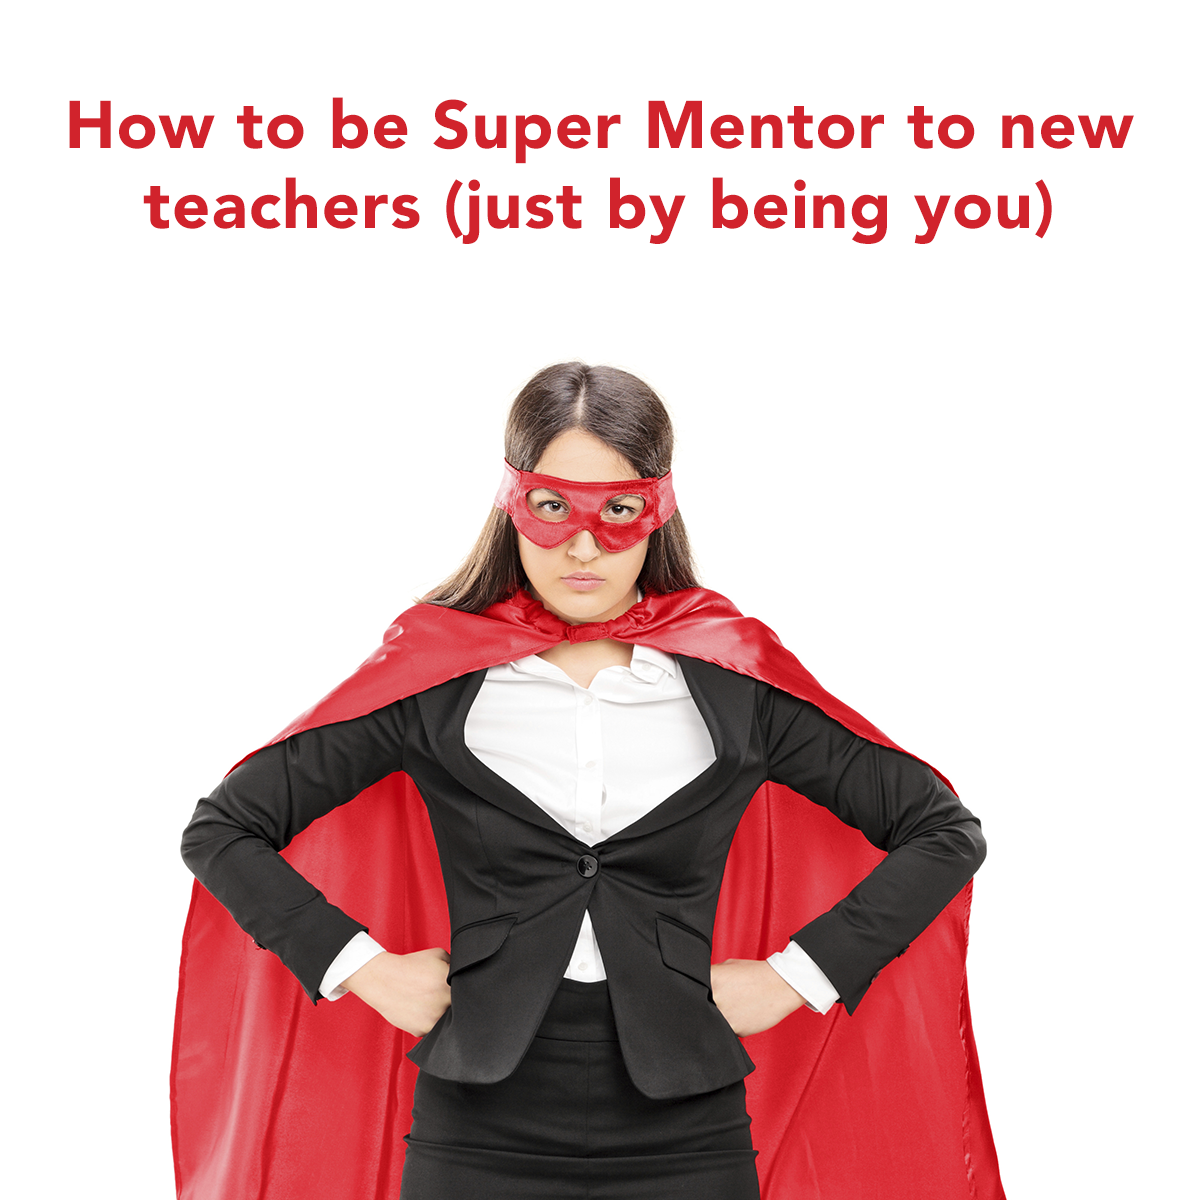 mentor teacher teachers mentoring teaching student relationship gifts tell truly program mentee thing making tips relationships quotes skills did plus